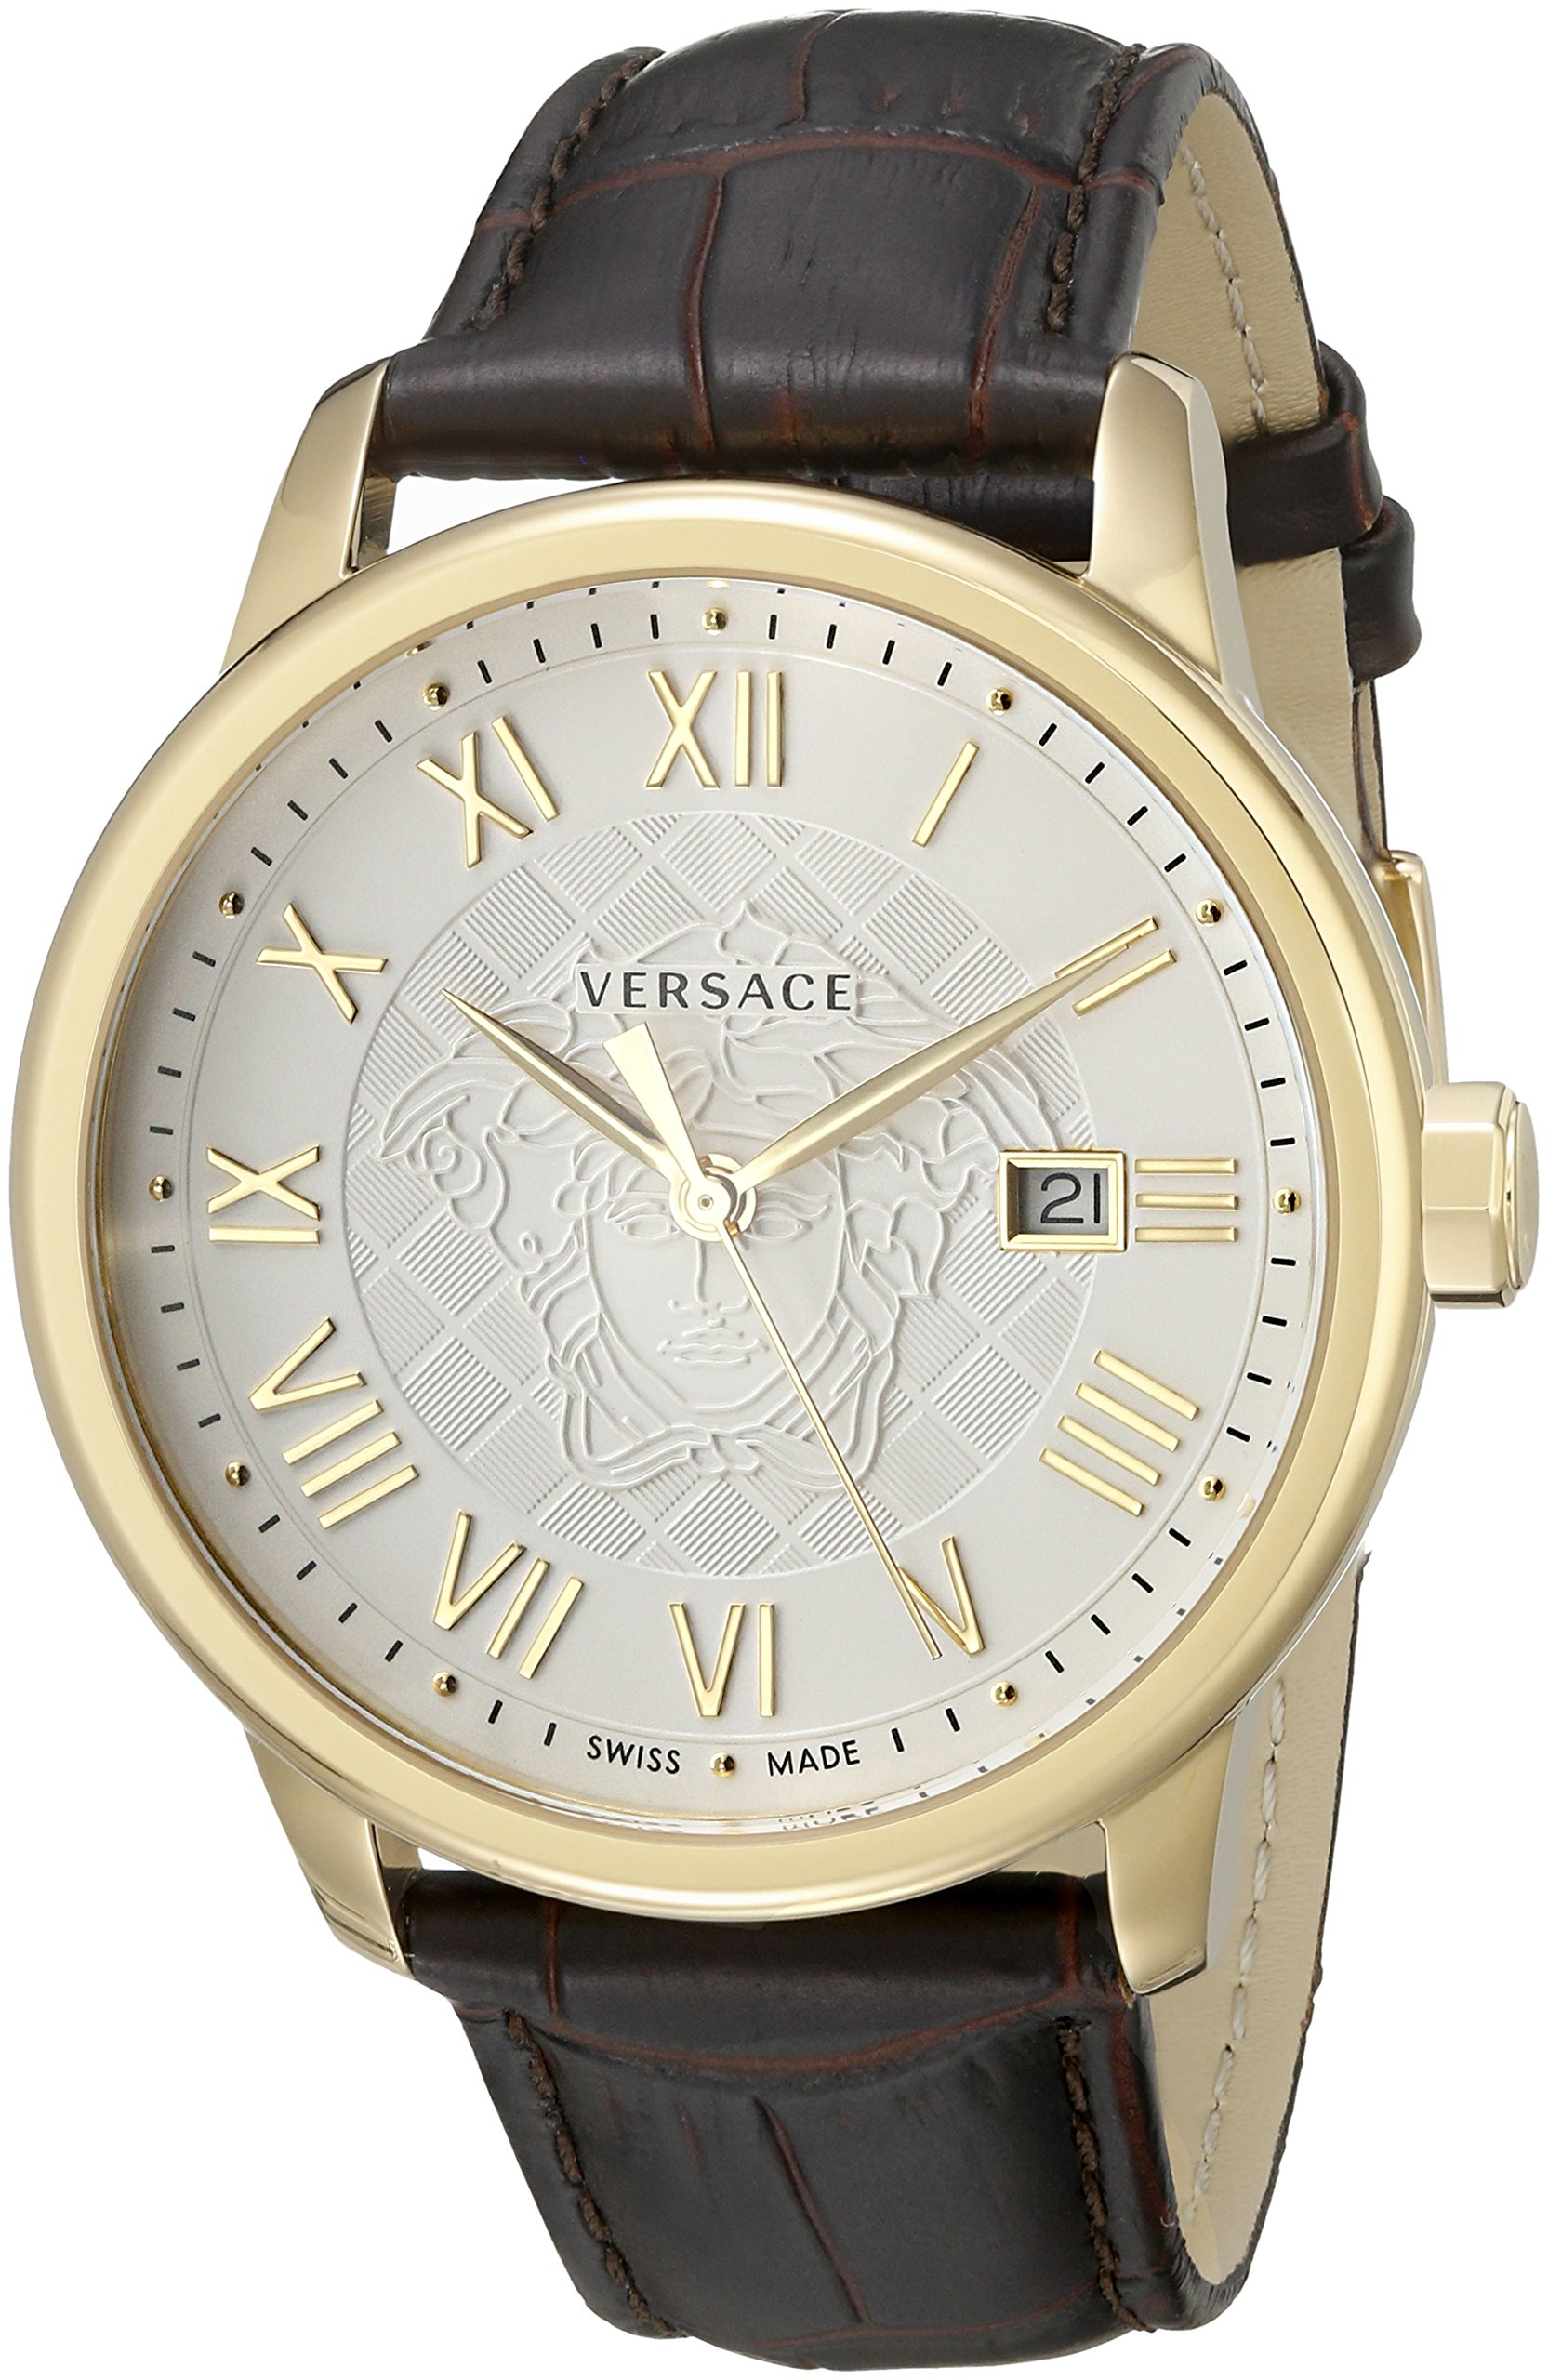 Versace Men's VQS030015 Business Analog Display Quartz Brown Watch by Versace